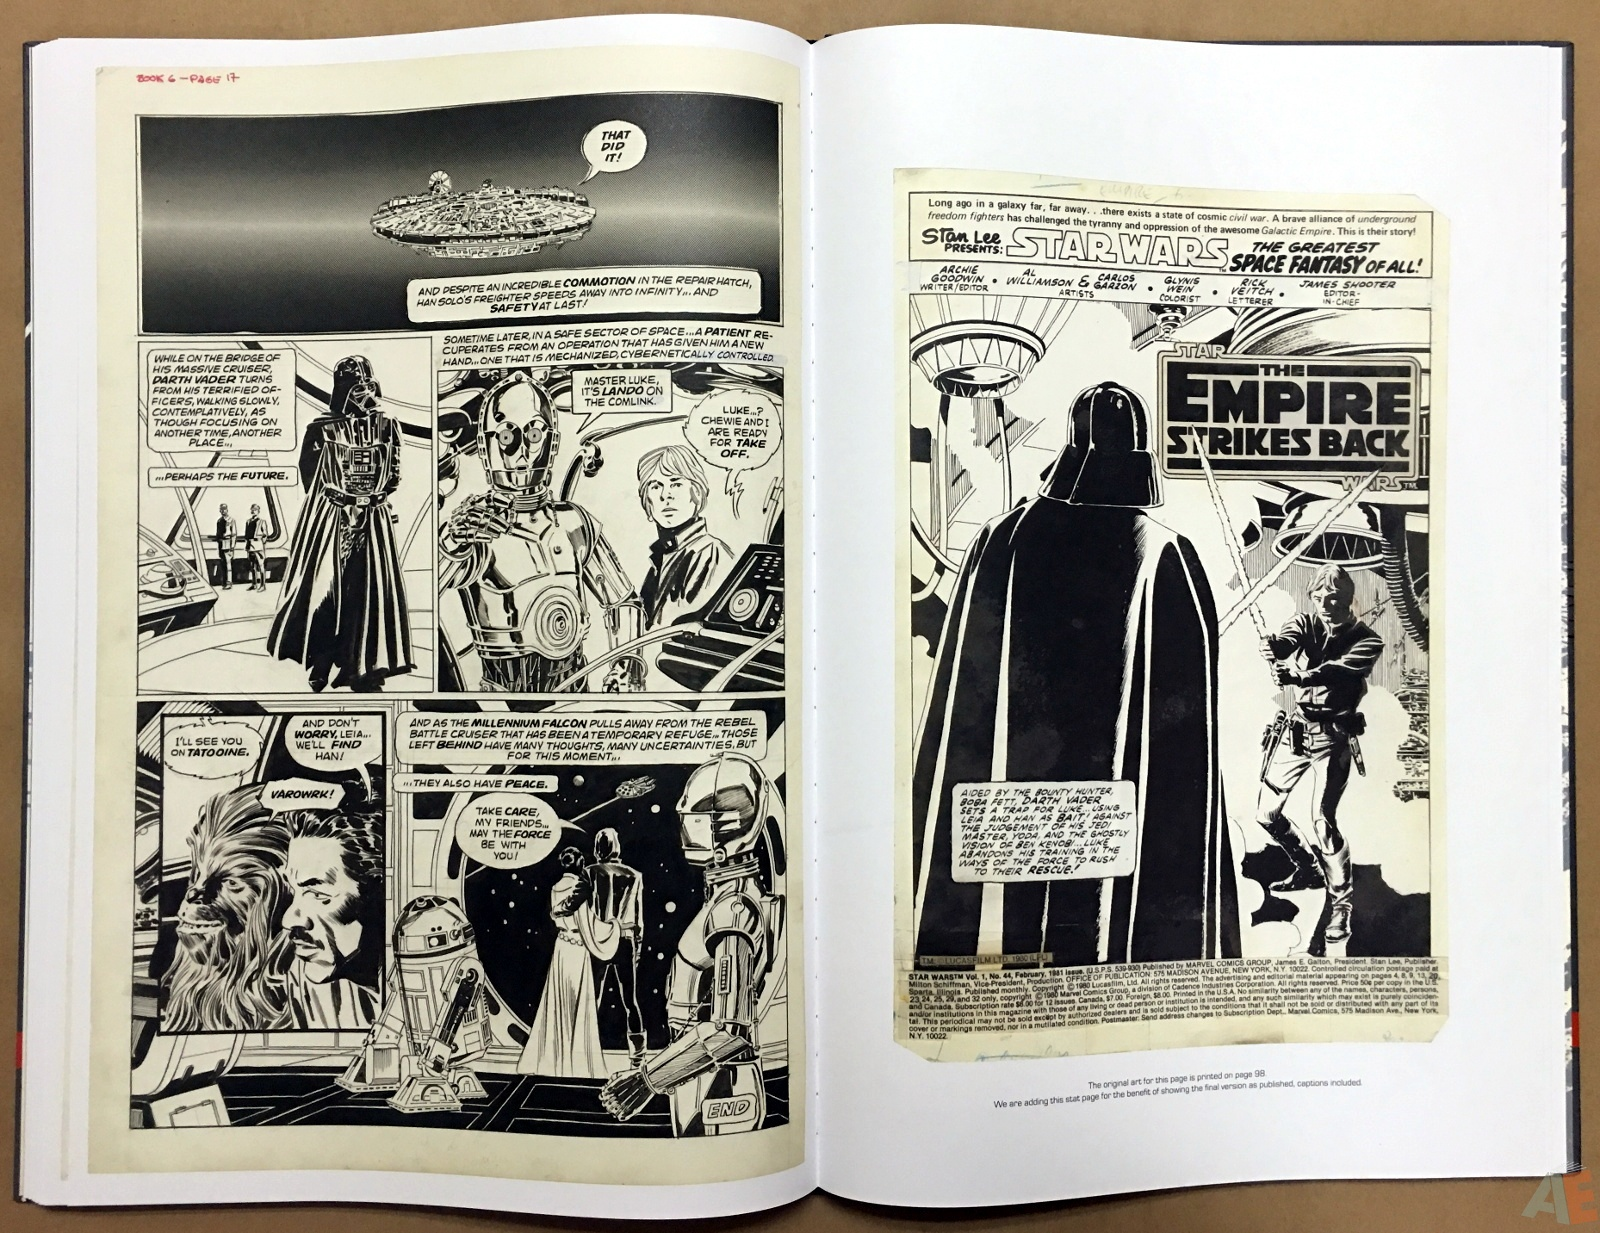 Al Williamson's Star Wars: The Empire Strikes Back Artist's Edition 36